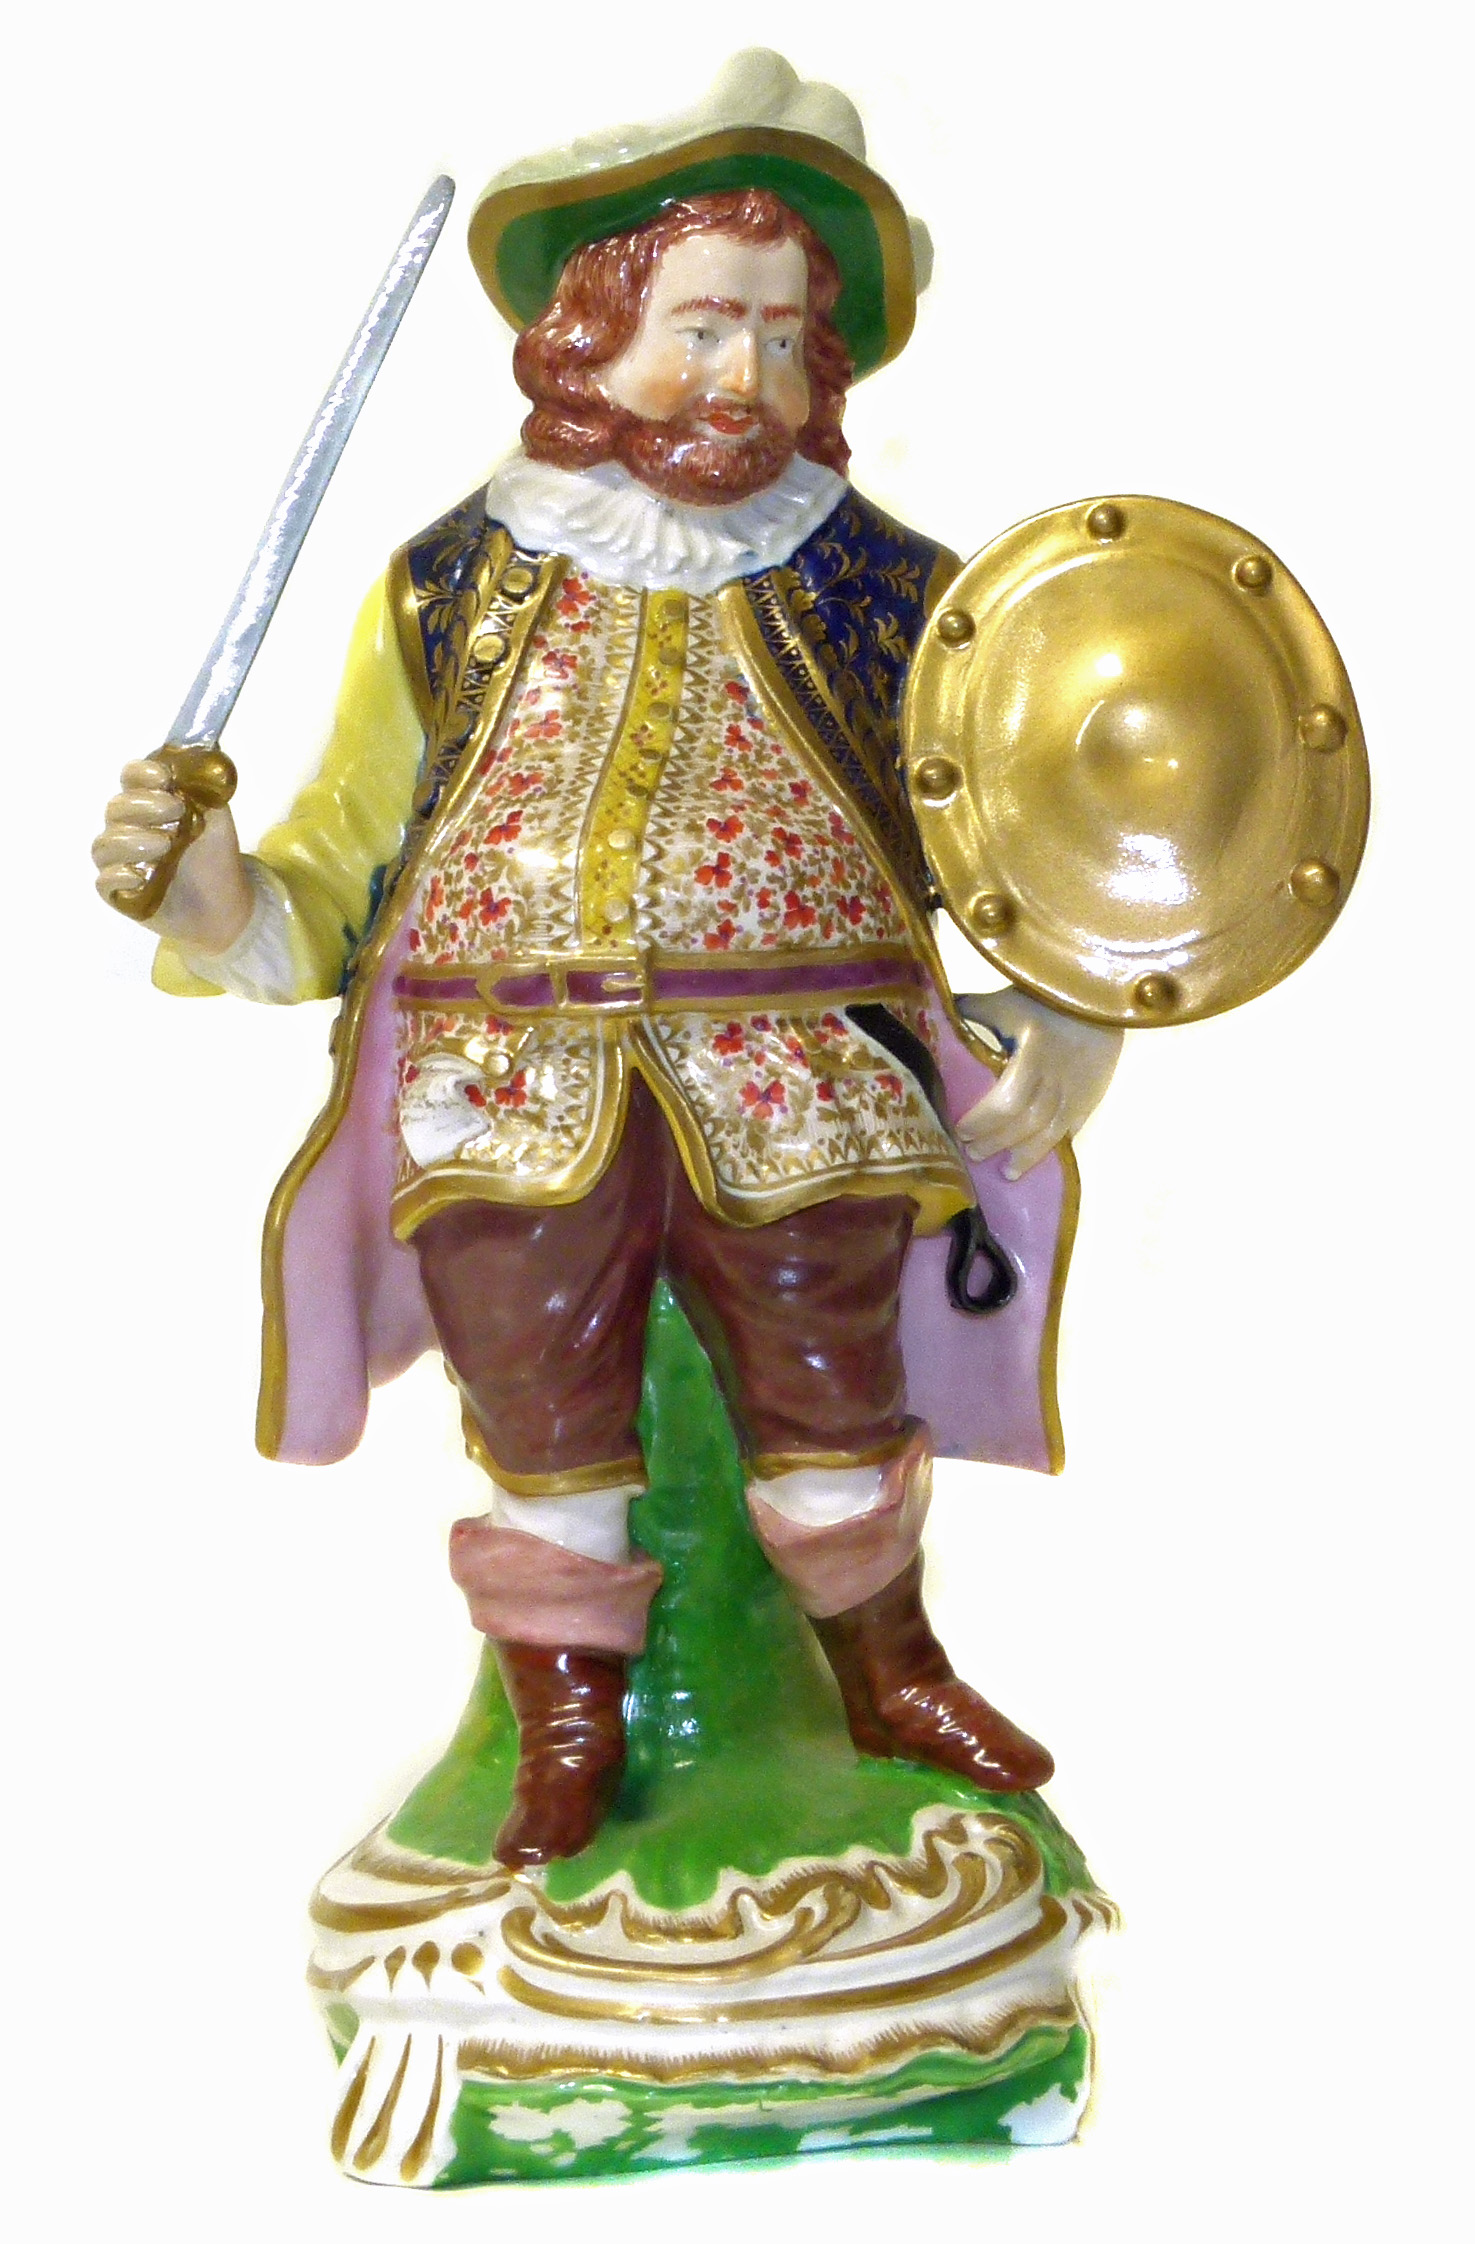 Lot 111 - Derby figure of Falstaff We are unable to do condition reports on our Interiors Sale